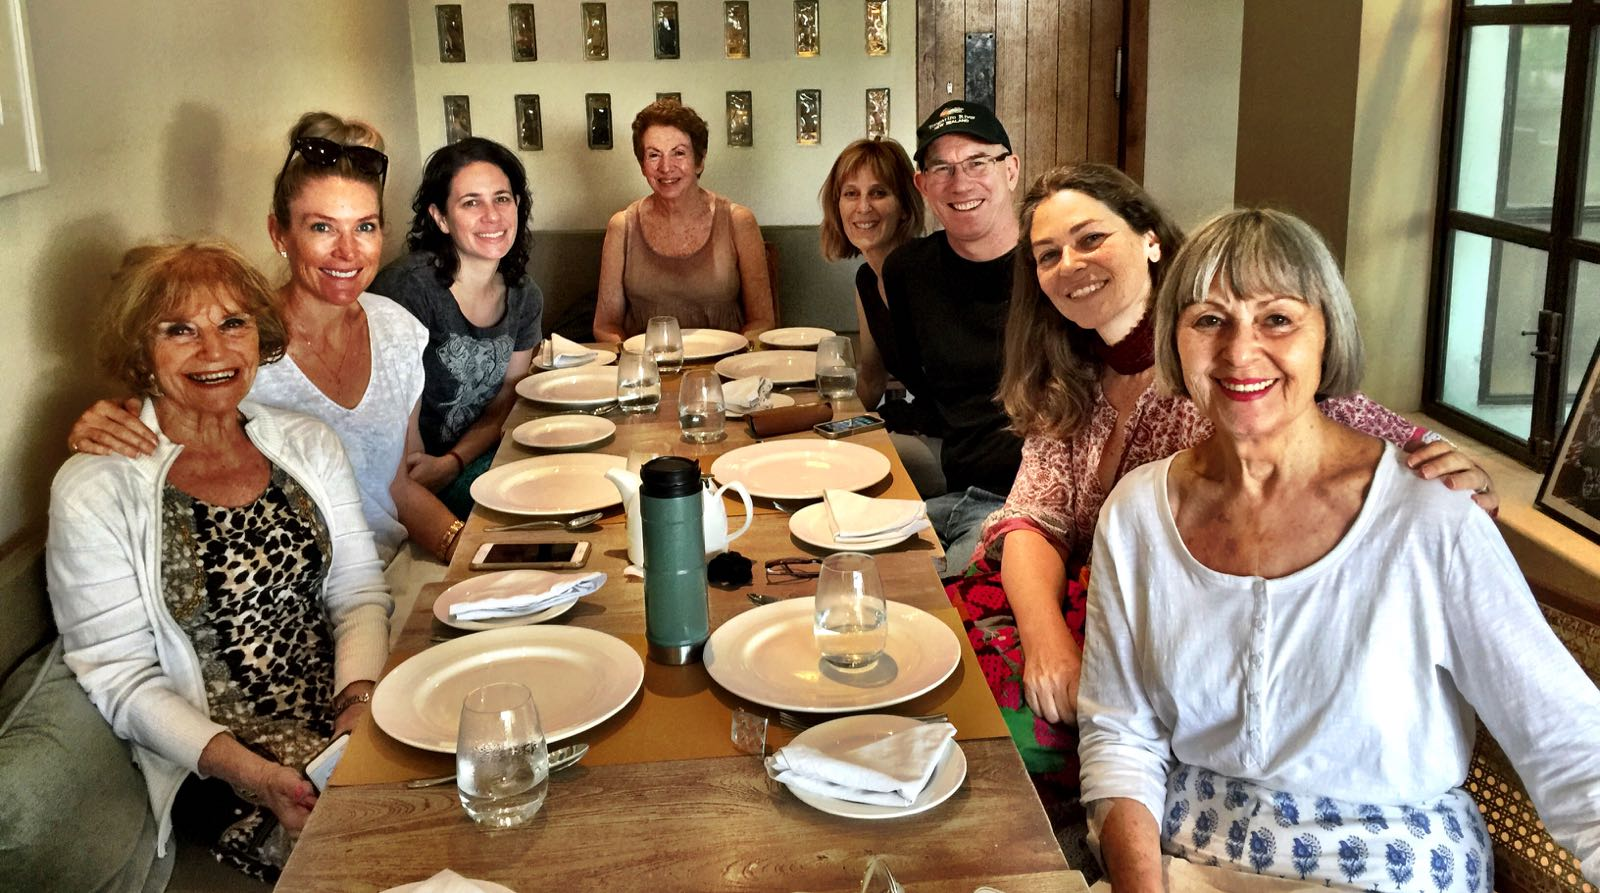 My lovely Australian retreat-mates. We shared many meals and many political conversations!